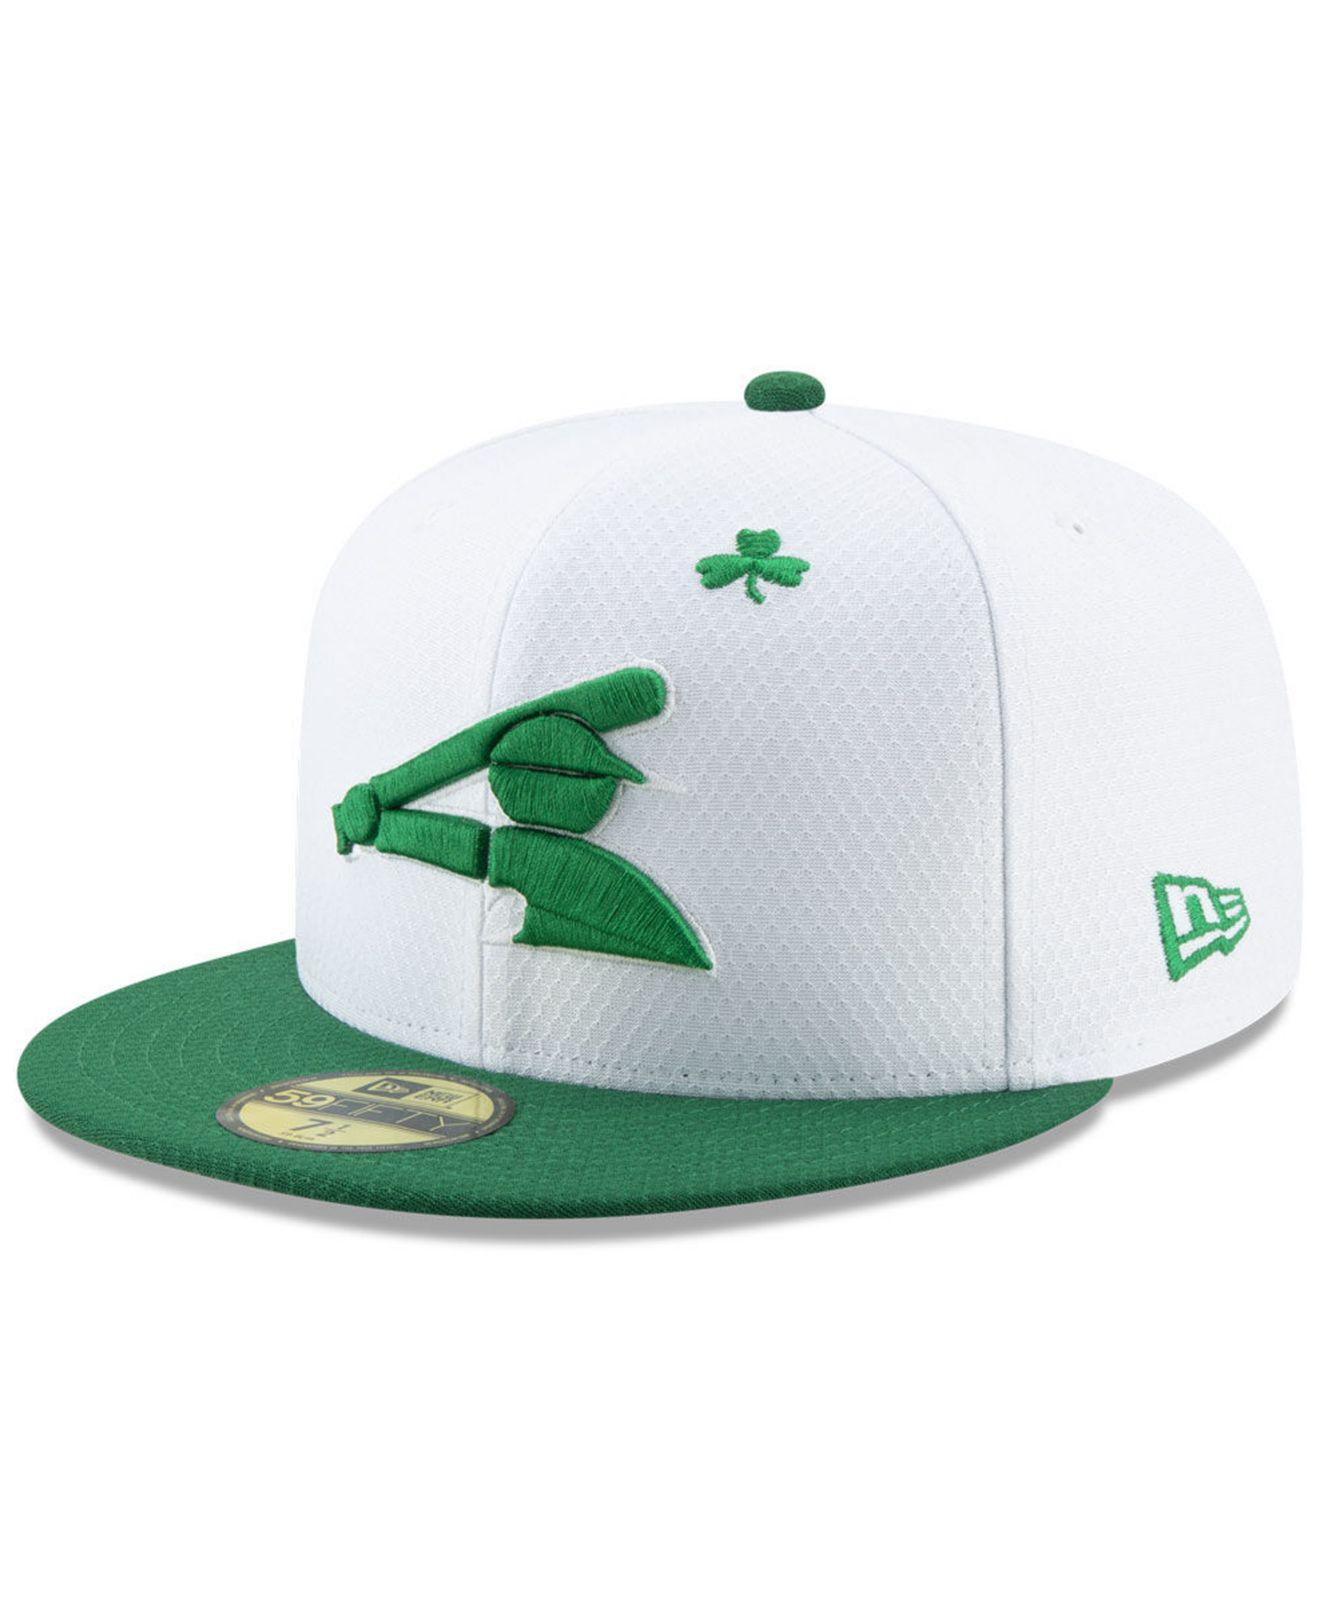 save off 40143 8df61 KTZ. Men s Chicago White Sox St. Pattys Day 59fifty-fitted Cap